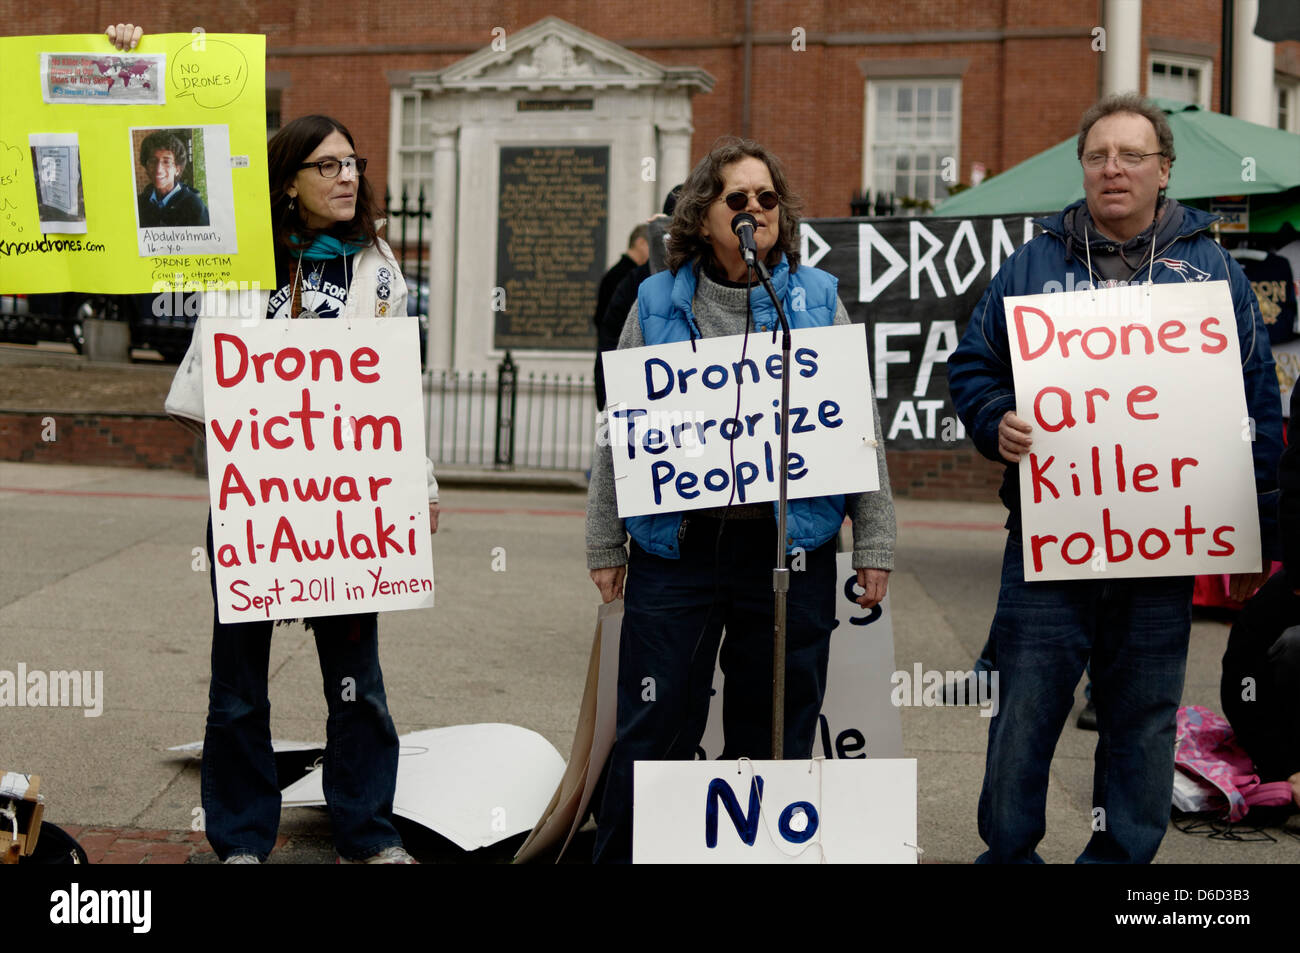 People demonstrating against US Drones - Stock Image